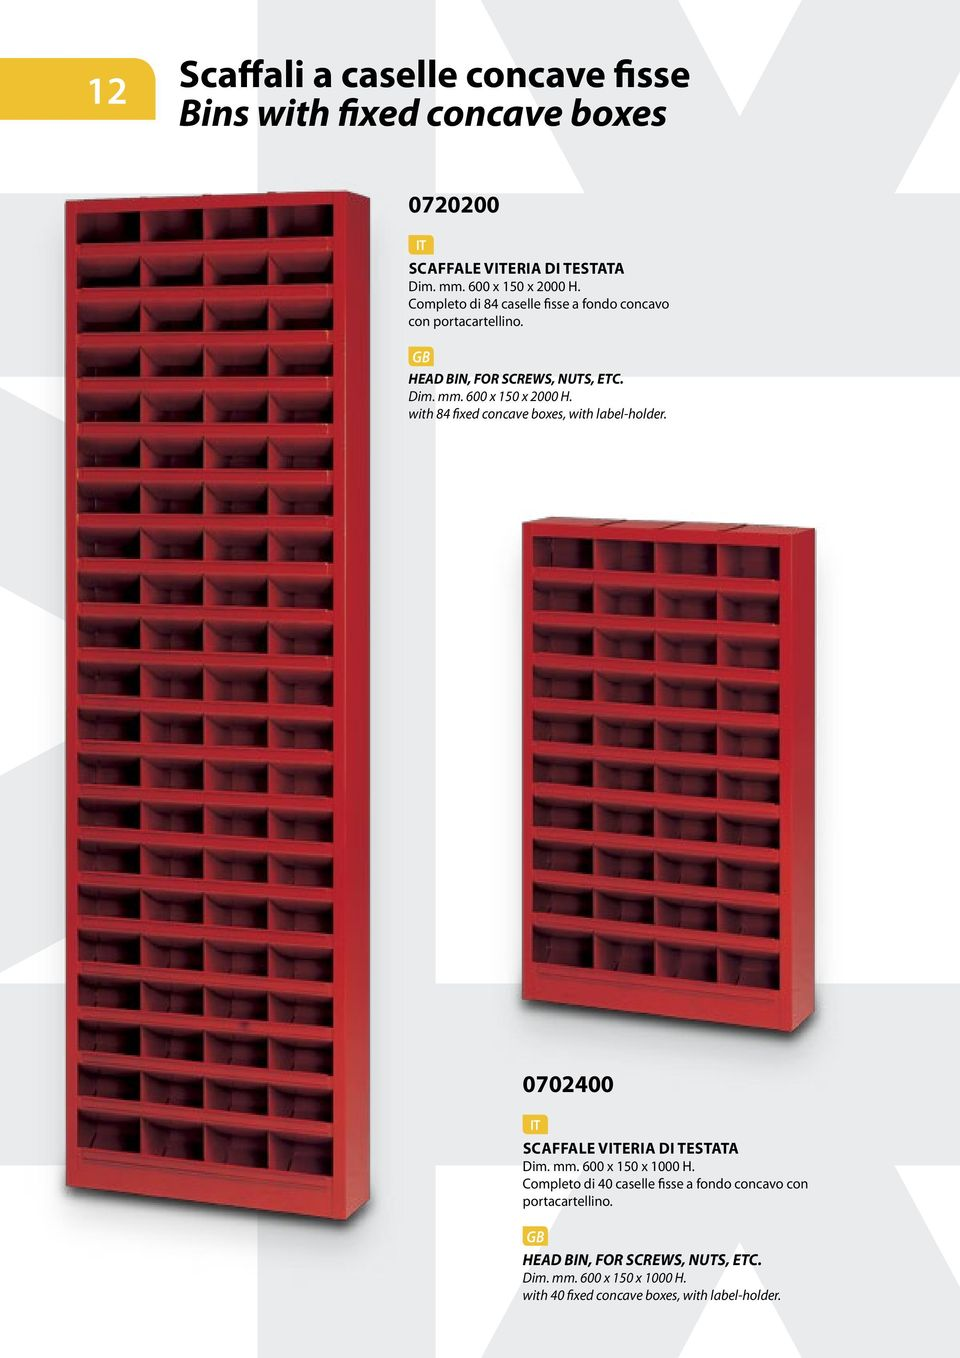 with 84 fixed concave boxes, with label-holder. 0702400 SCAFFALE VERIA DI TESTATA Dim. mm. 600 x 150 x 1000 H.